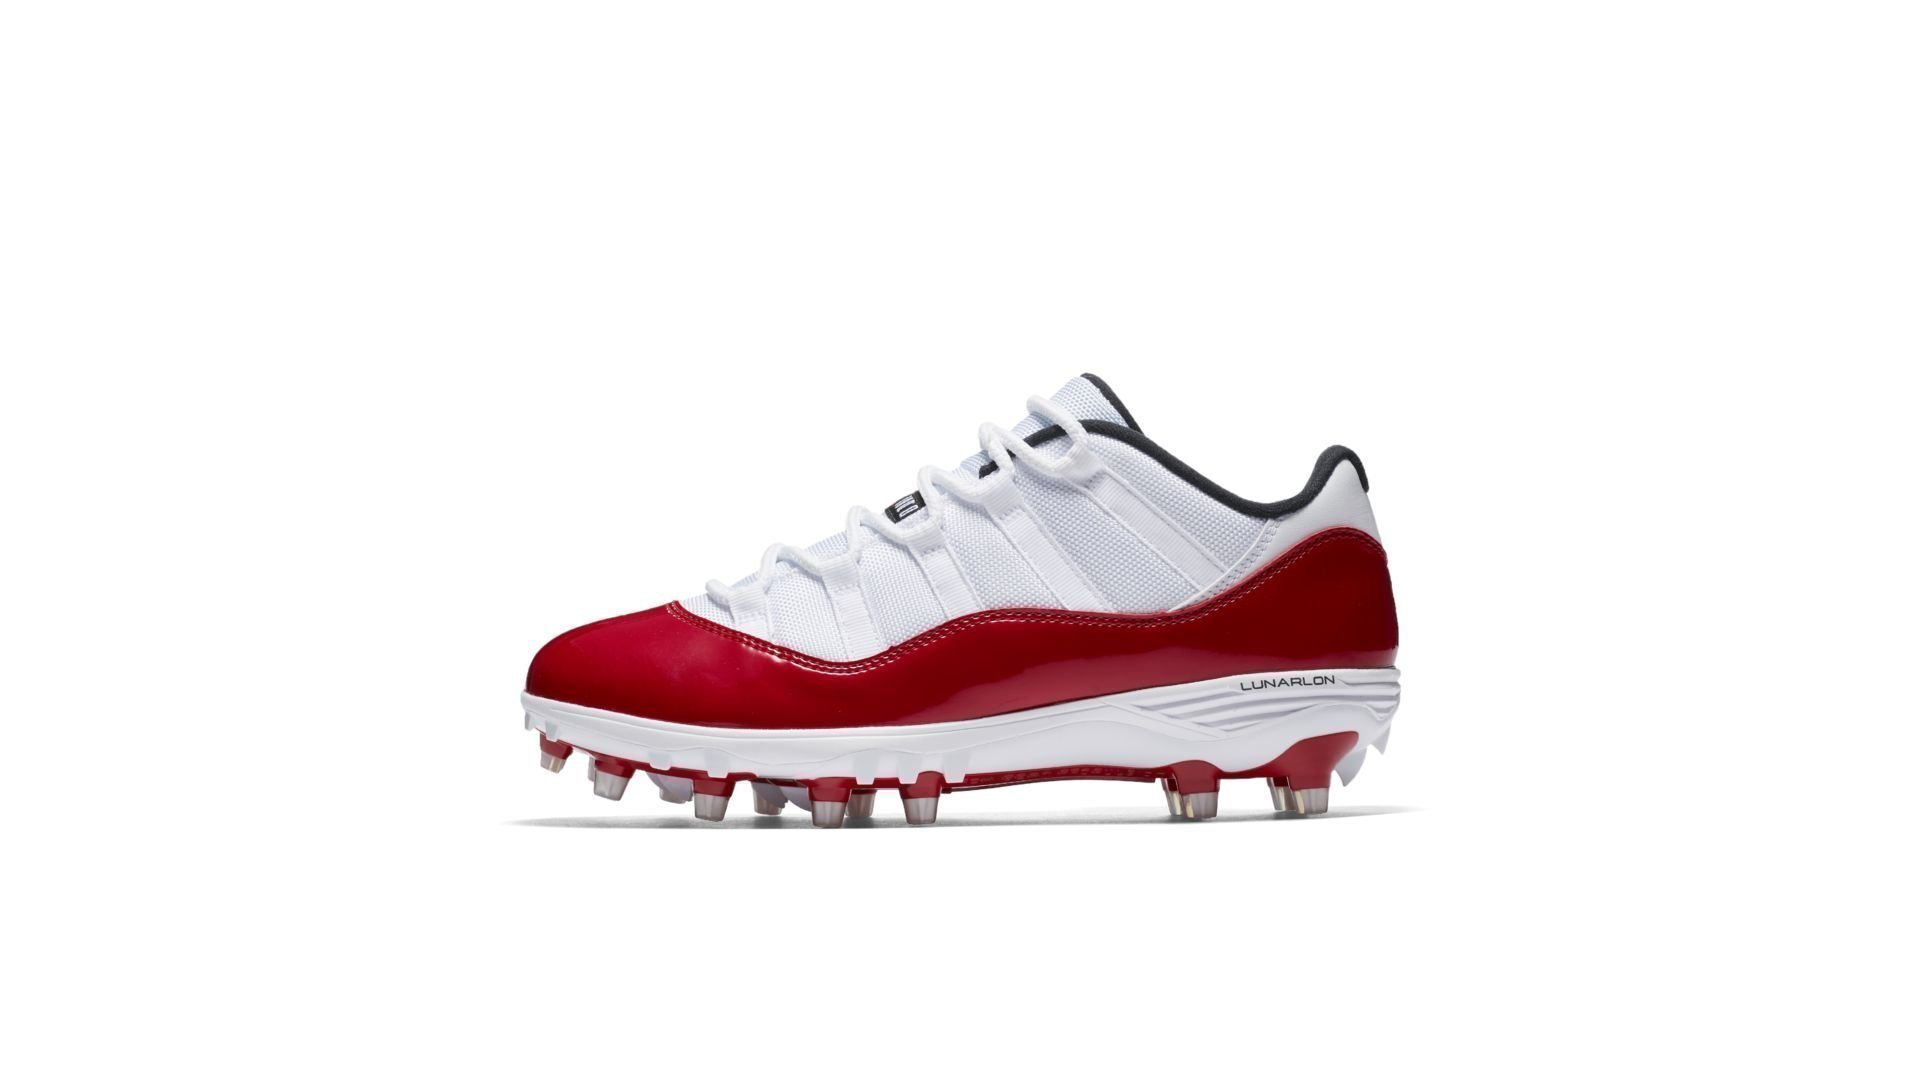 Jordan 11 Retro Low Cleat White Red (AO1560-101)